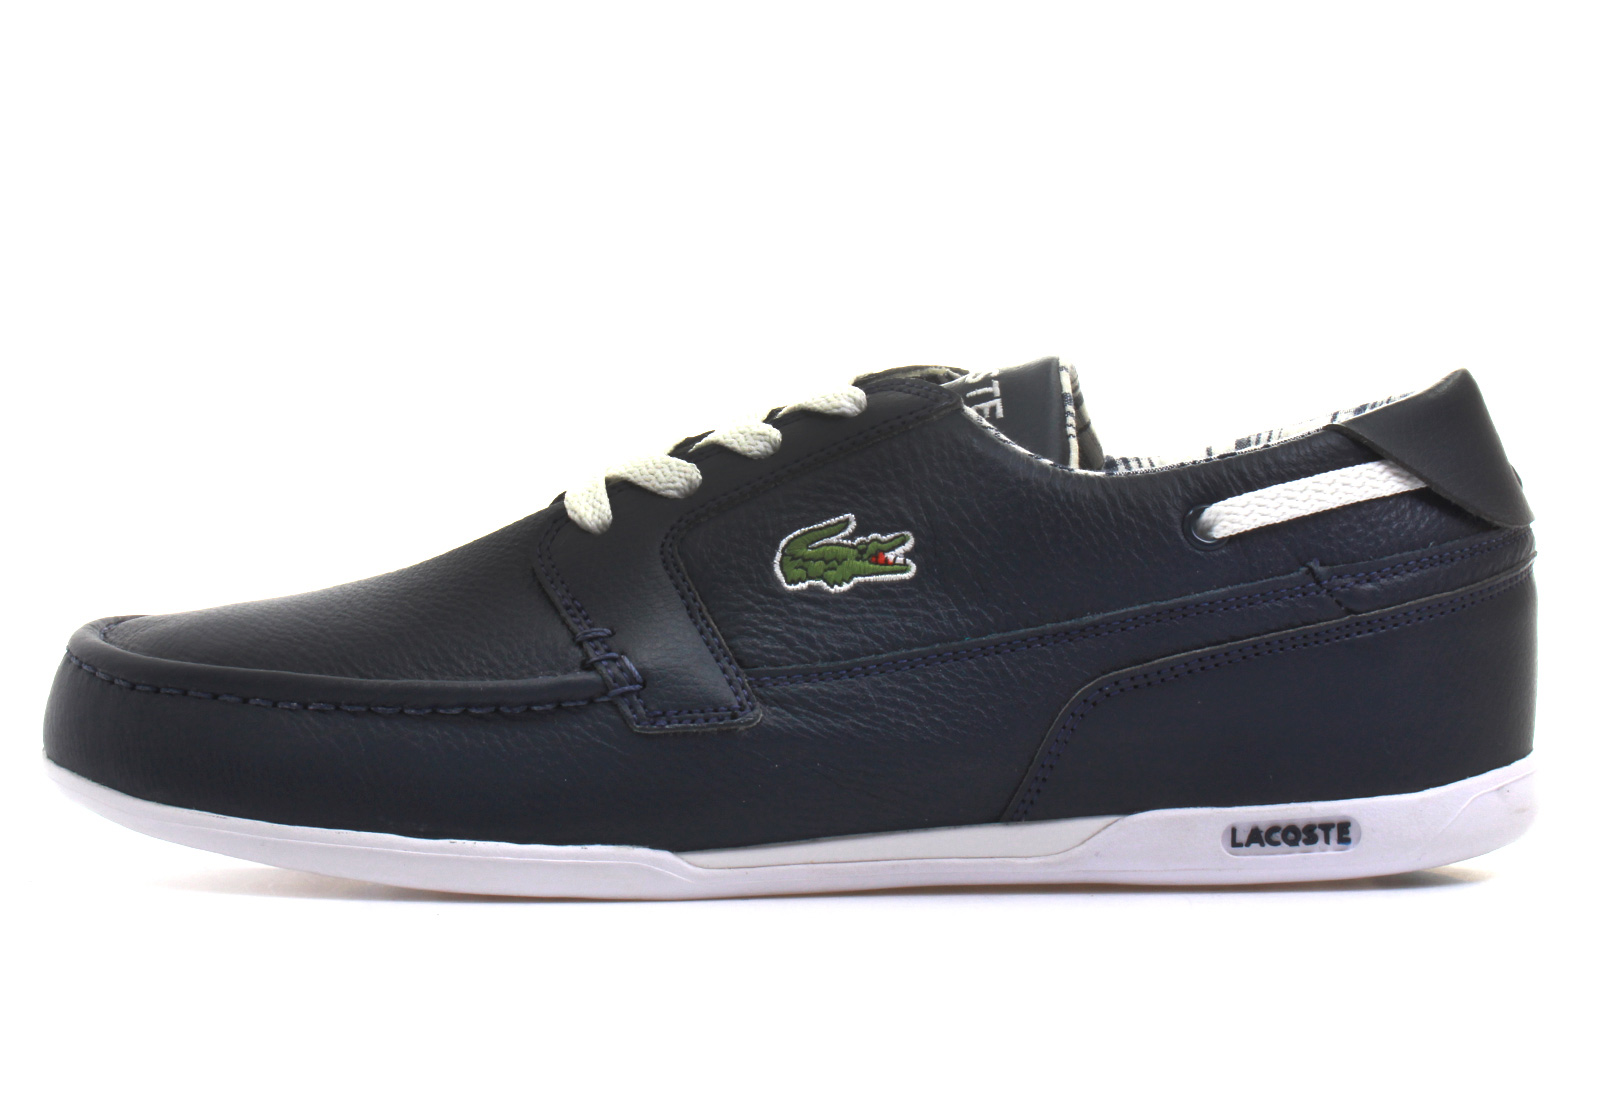 Shop all Lacoste products - Choose from a huge selection of Lacoste products from the most popular online stores at Best Life.